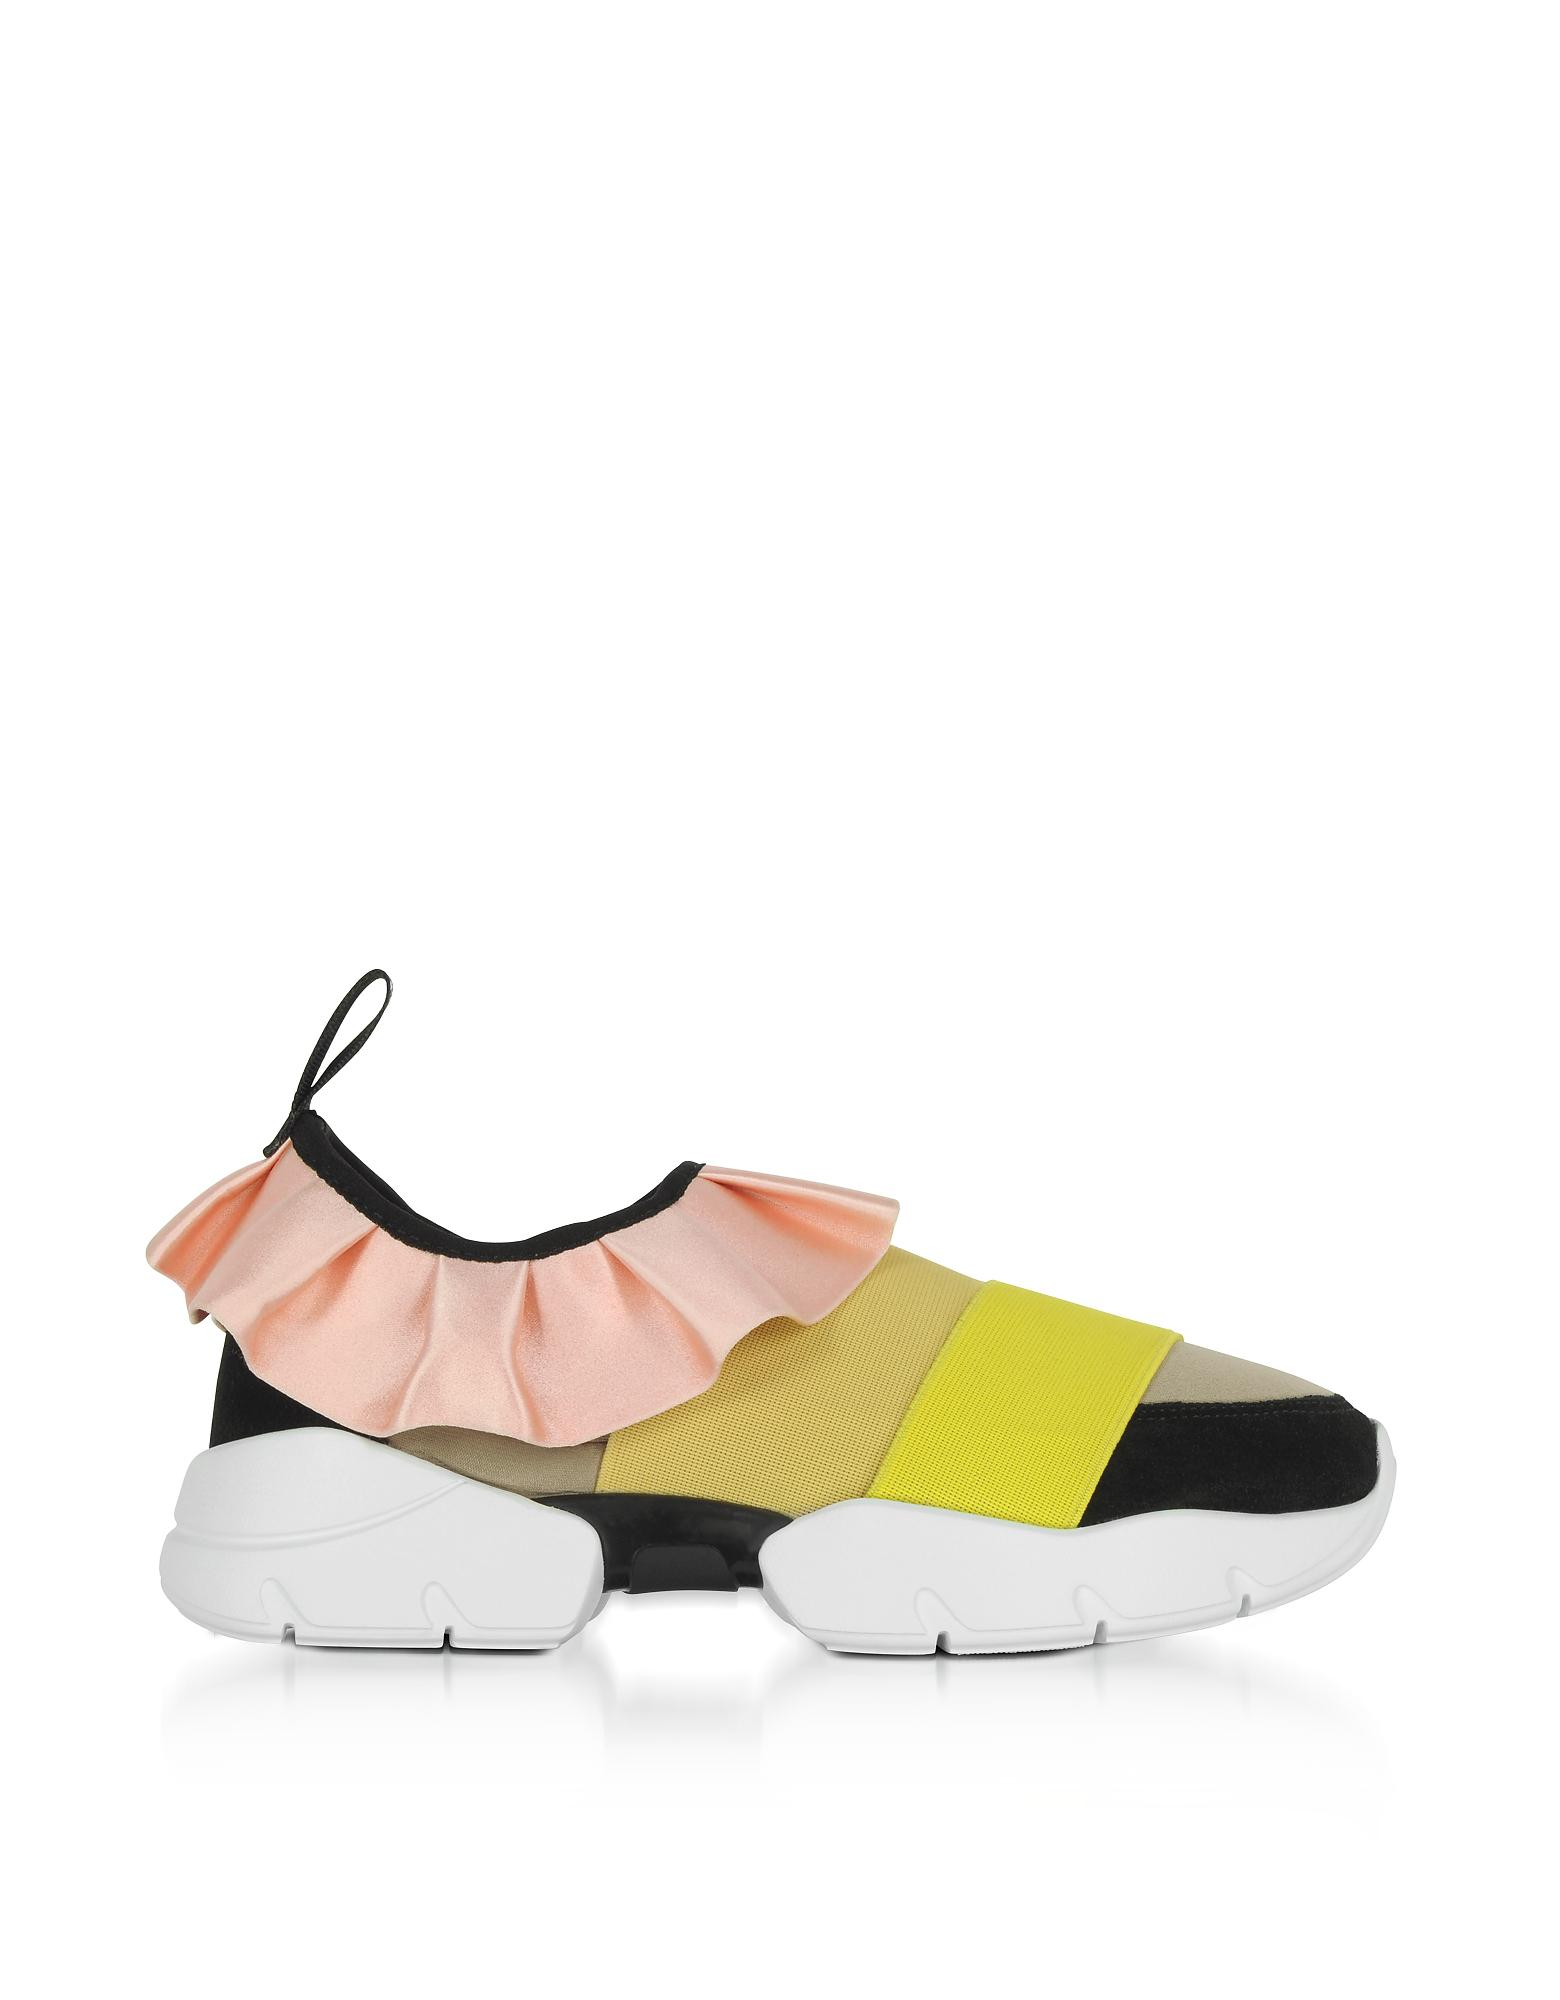 Cheap Sale 2018 New Discount Reliable ruffle strap sneakers - Yellow & Orange Emilio Pucci 4yqNajG